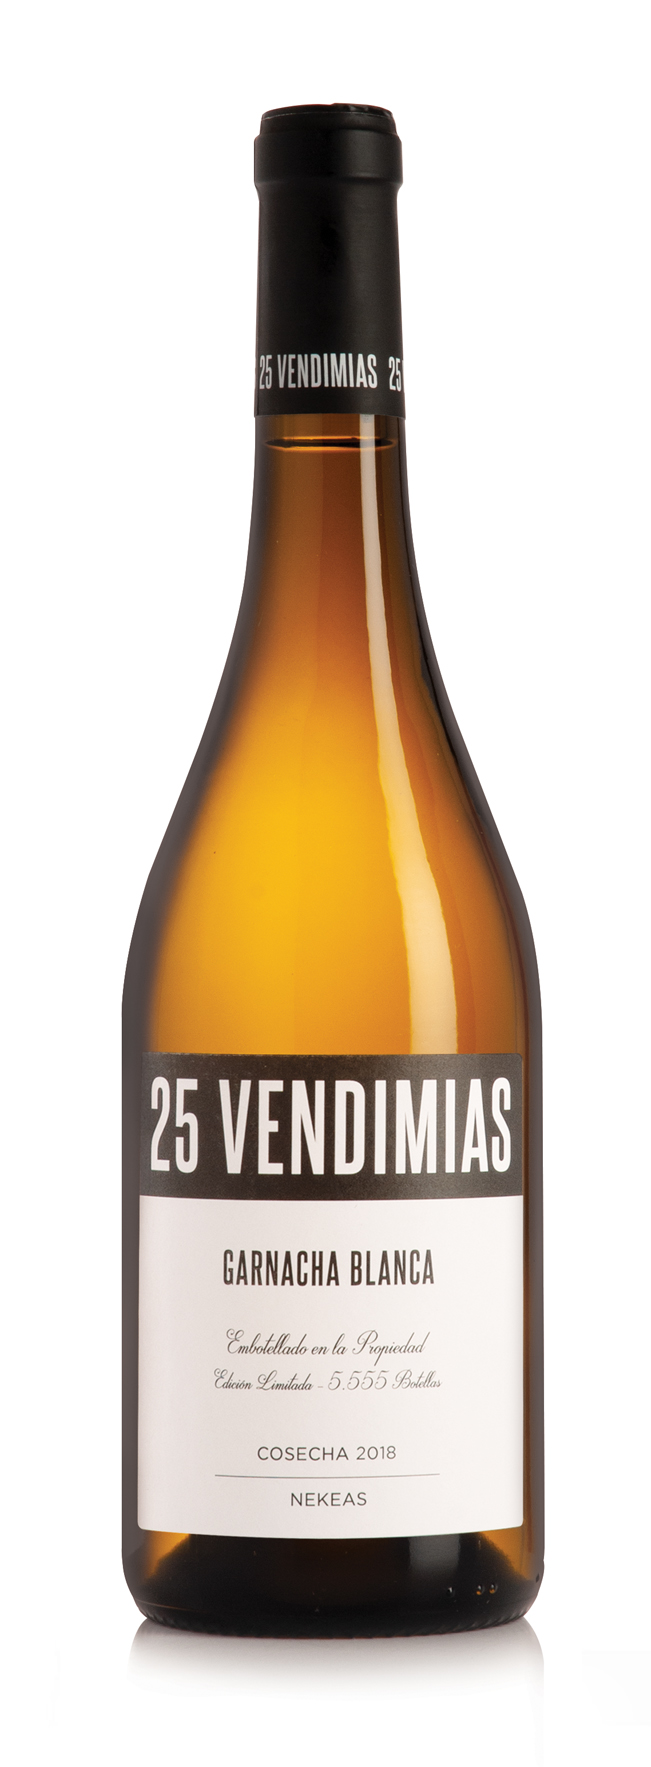 25 Vendimias Garnacha Blanca Bottle Photo